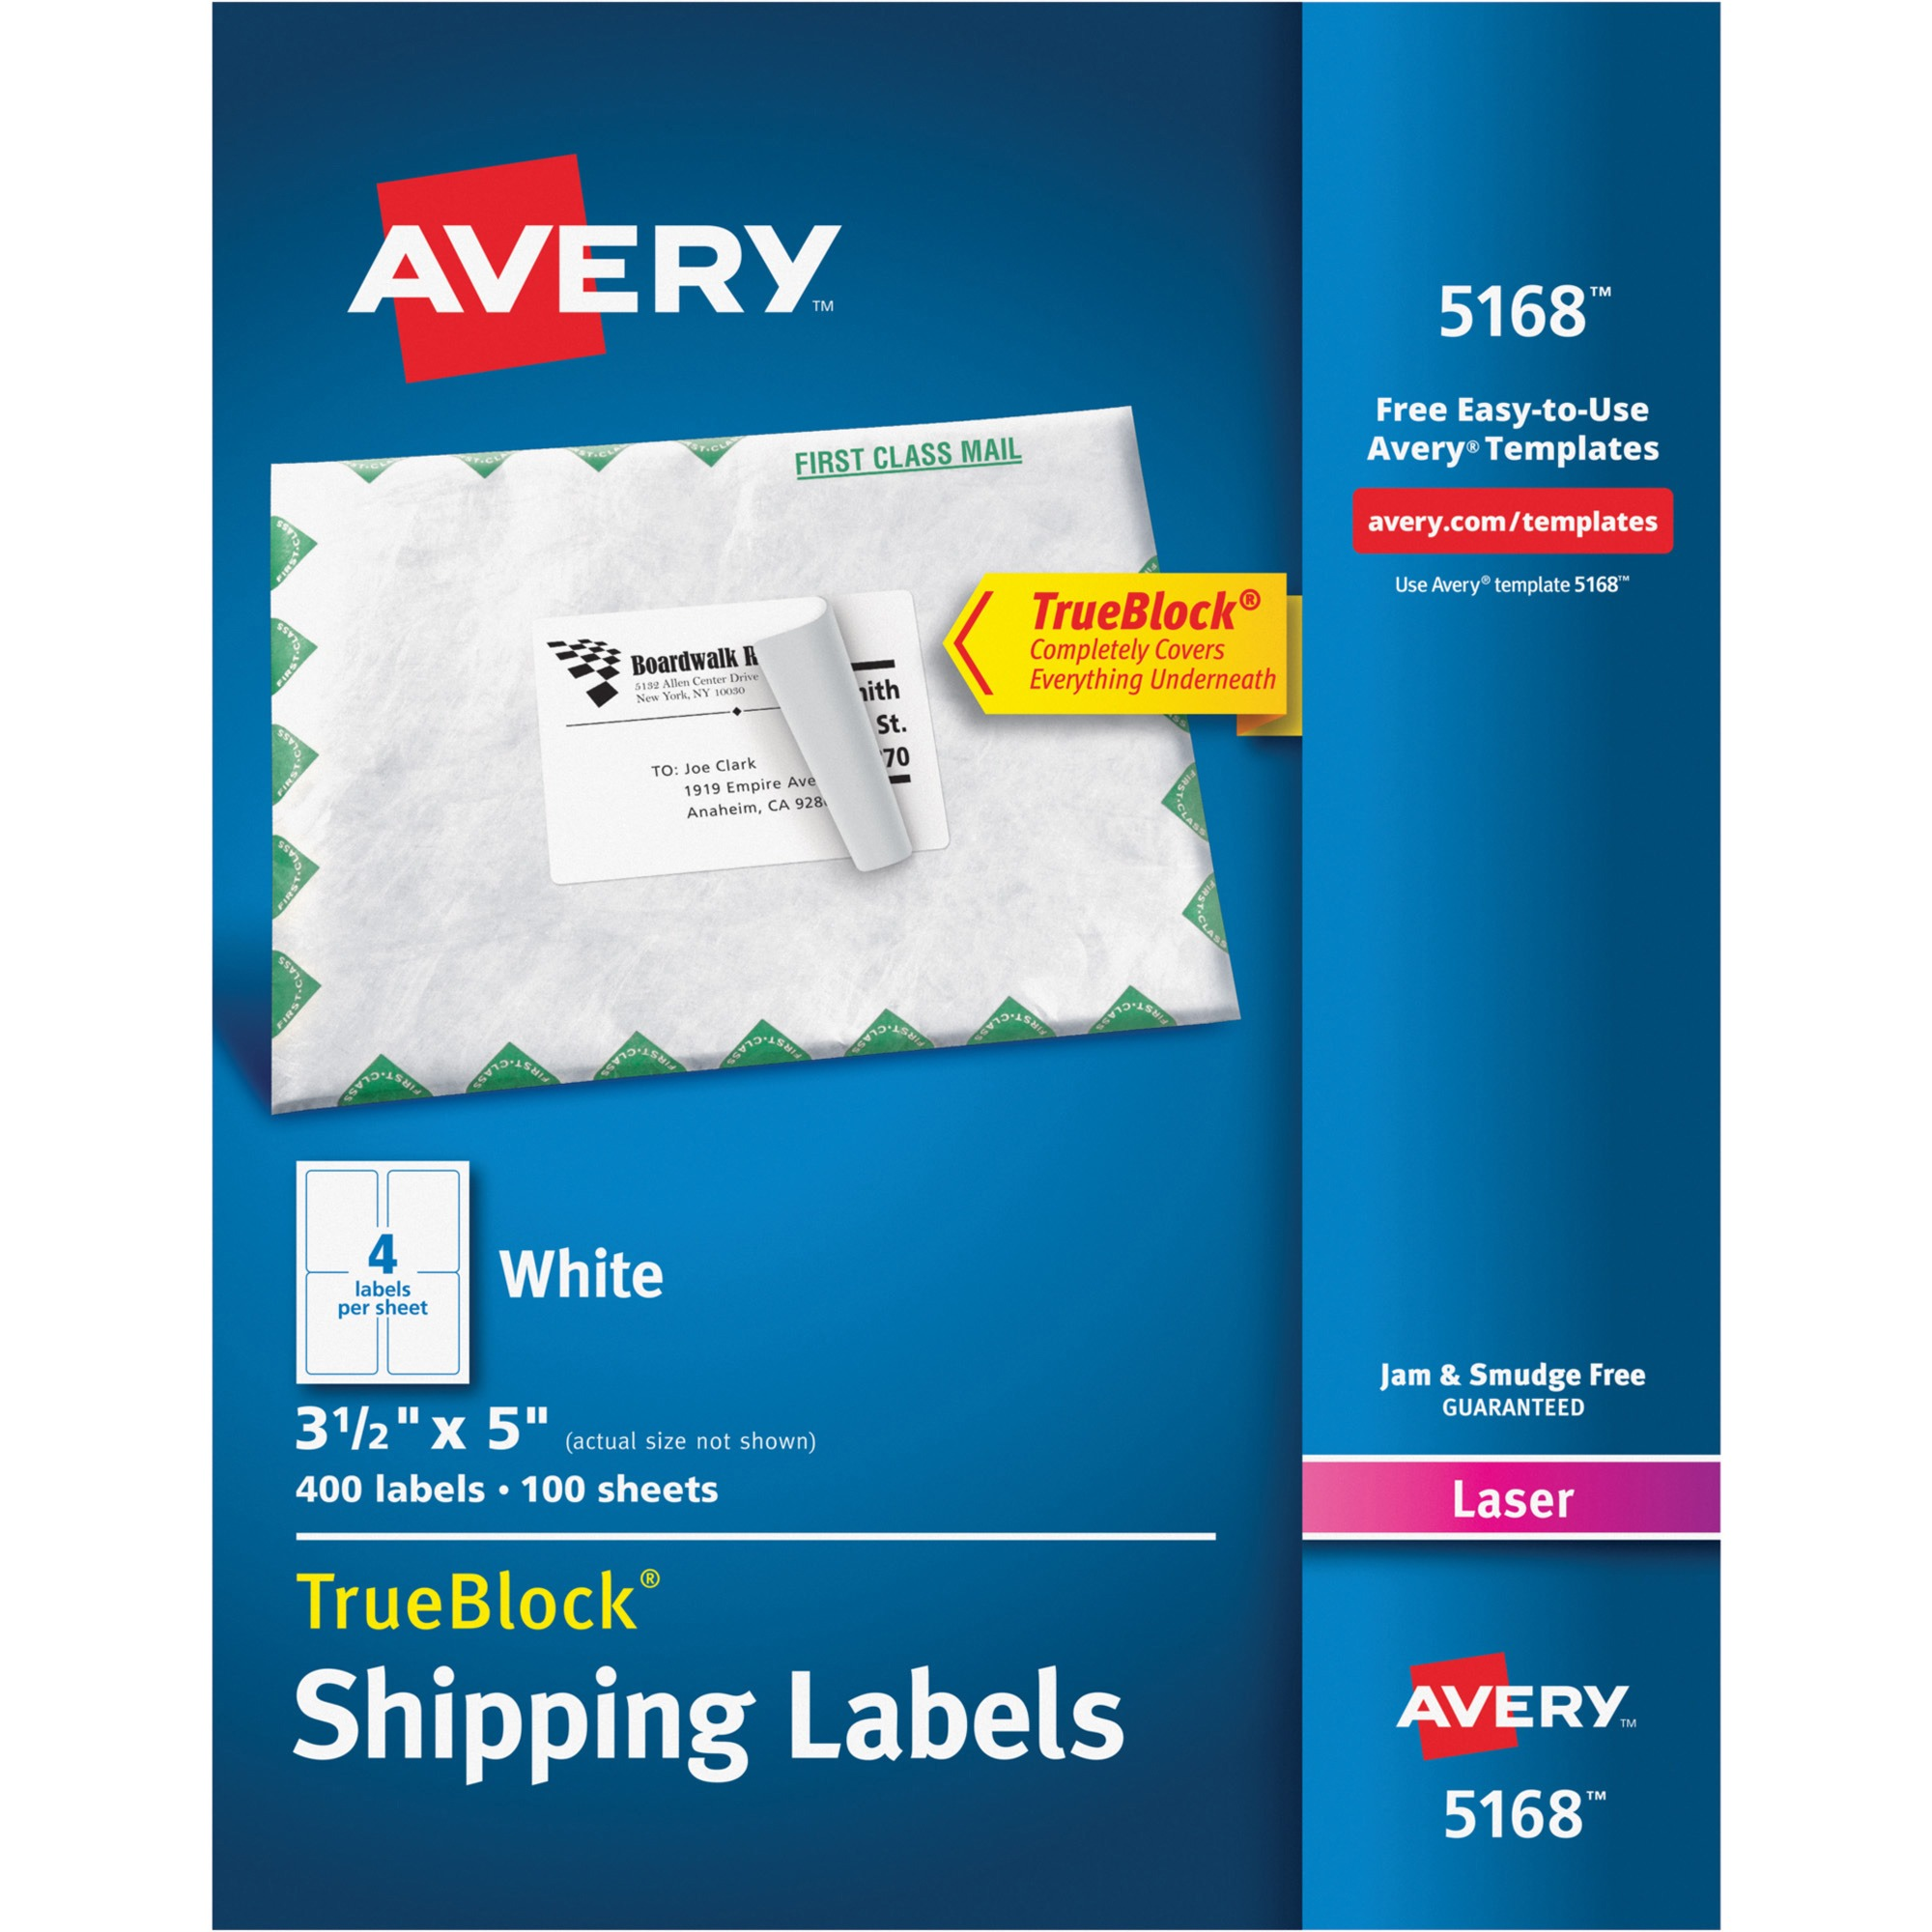 "Avery(R) Shipping Labels with TrueBlock(R) Technology for Laser Printers 5168, 3-1/2"" x 5"", Box of 400"